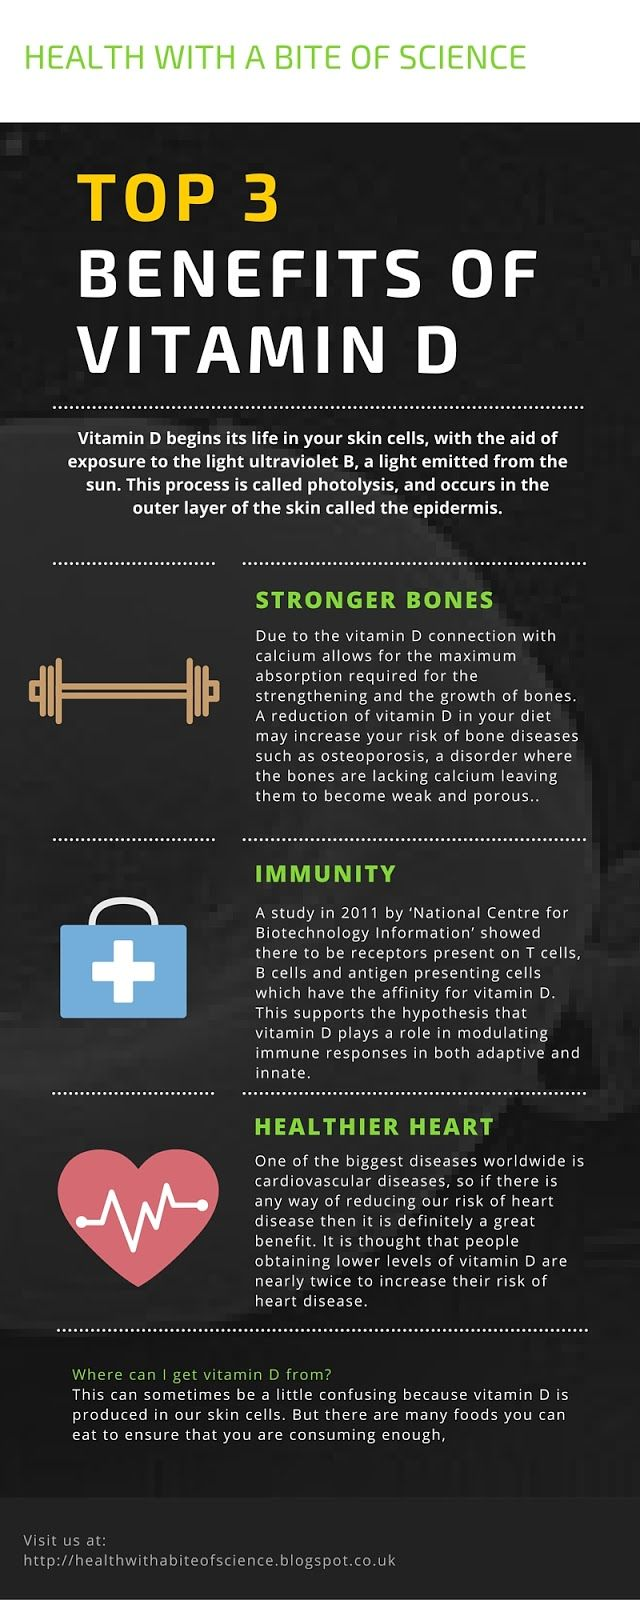 Health with a bite of science: Top 3 benefits of Vitamin D  #health #healthylfesyle #healthyliving #healthy